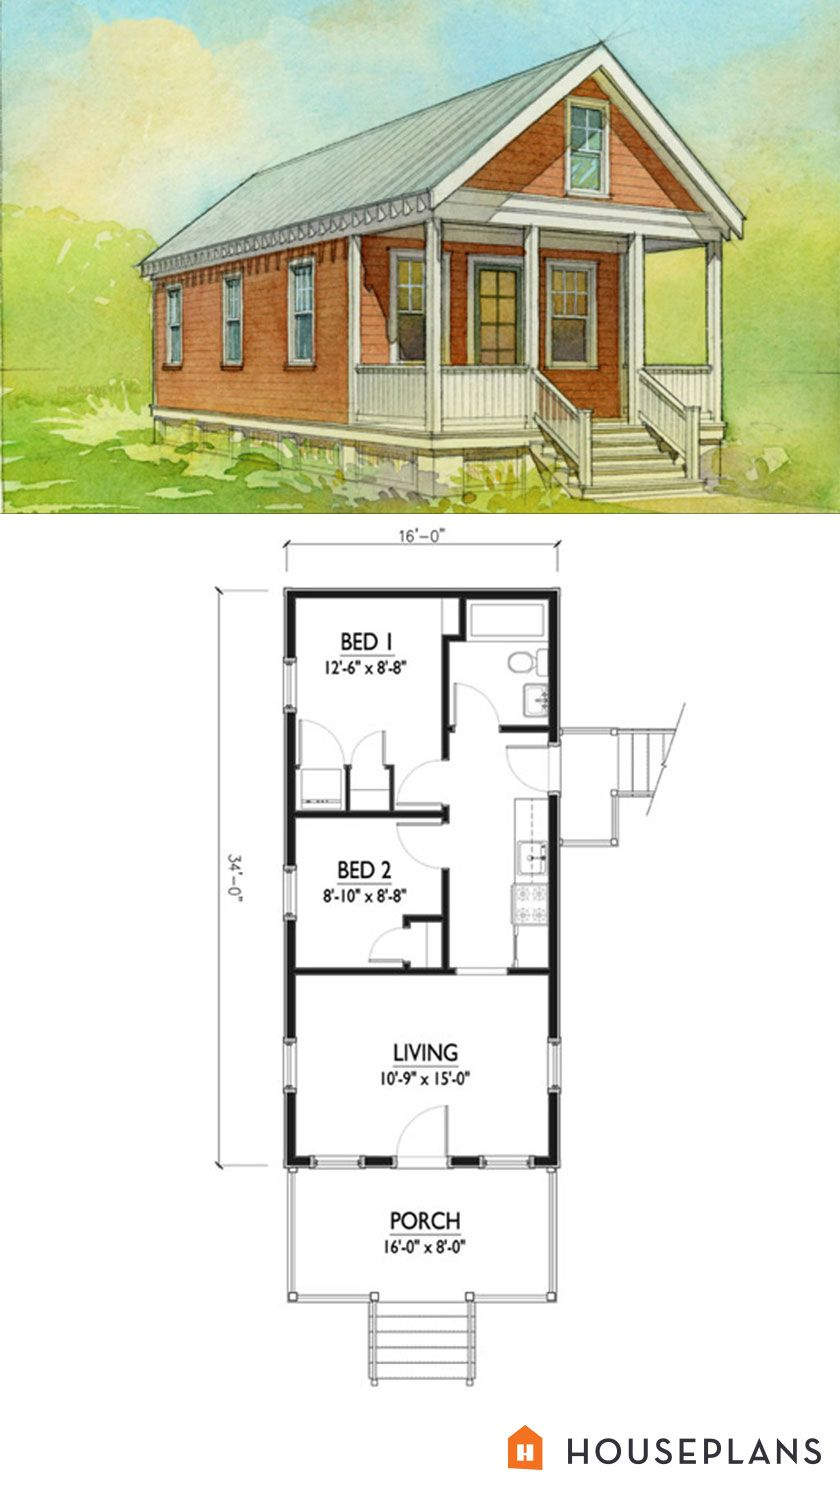 Small katrina cottage house plan 500sft 2br 1 bath by for House plans for small houses cottage style